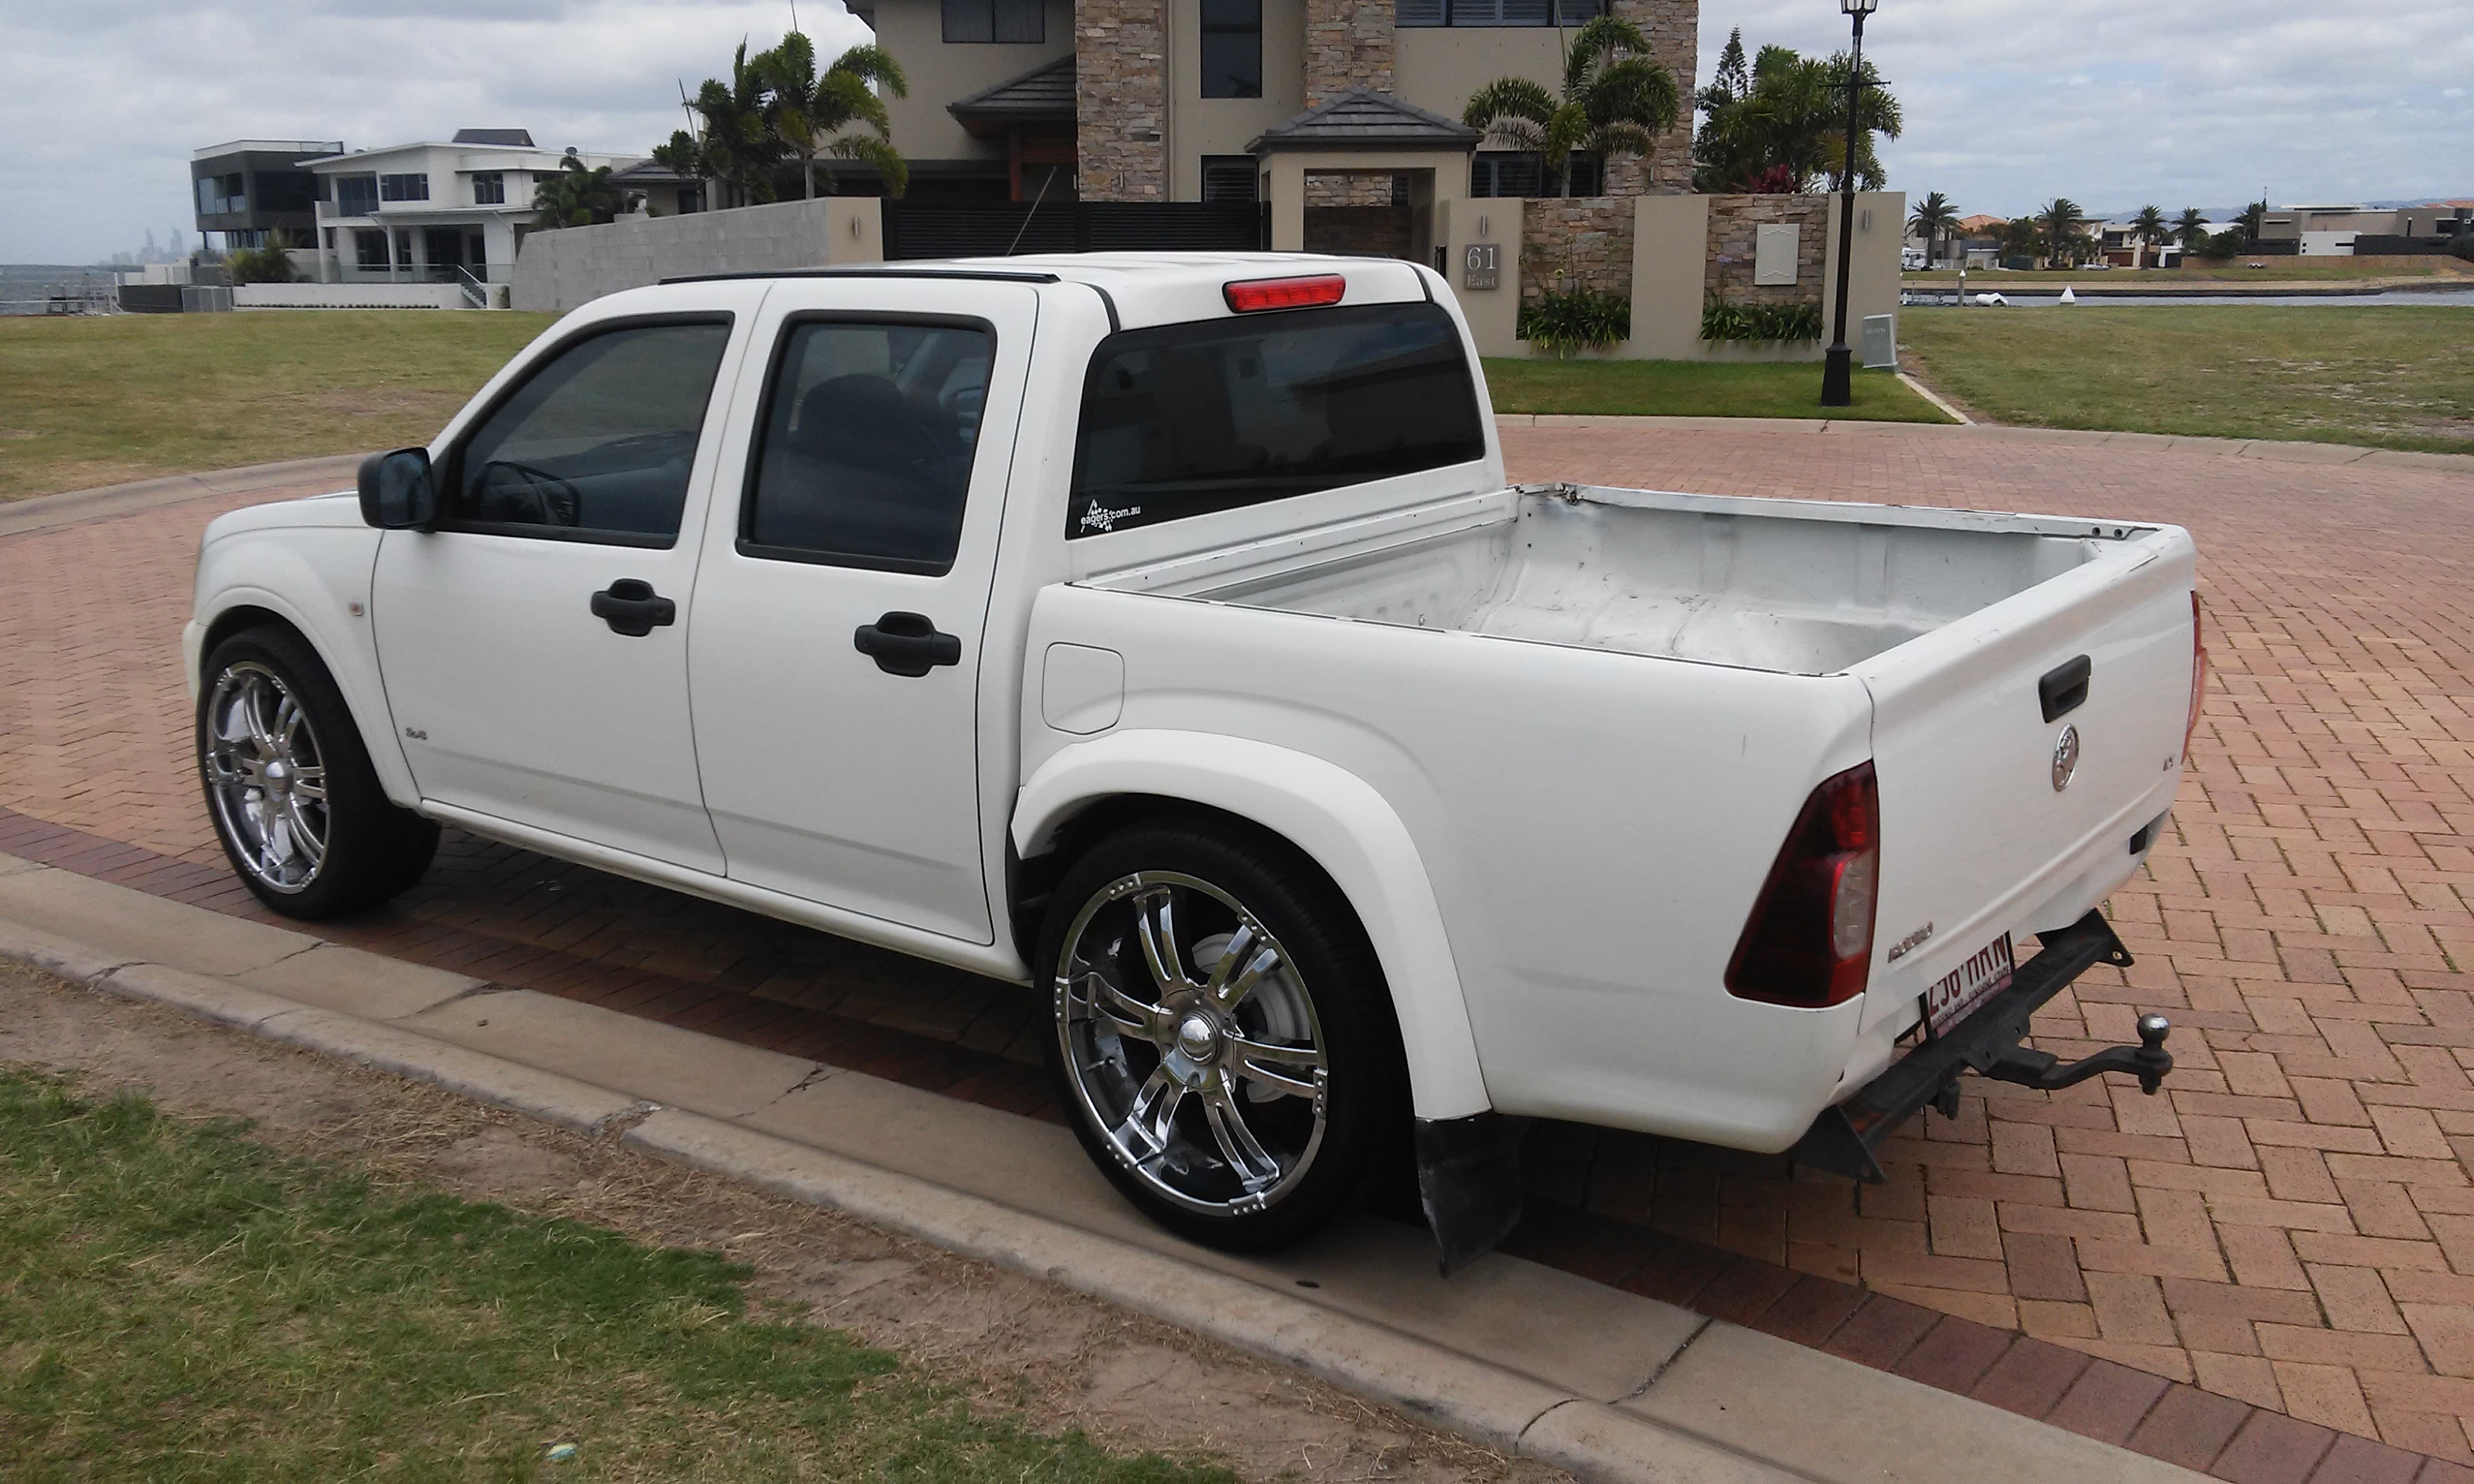 chrysler 300 inside with 2911334 2004 Holden Rodeo Dx Ra For Sale on First Muscle Car likewise System in addition 4315070247 together with 2911334 2004 Holden Rodeo DX RA For Sale further 131786729465.